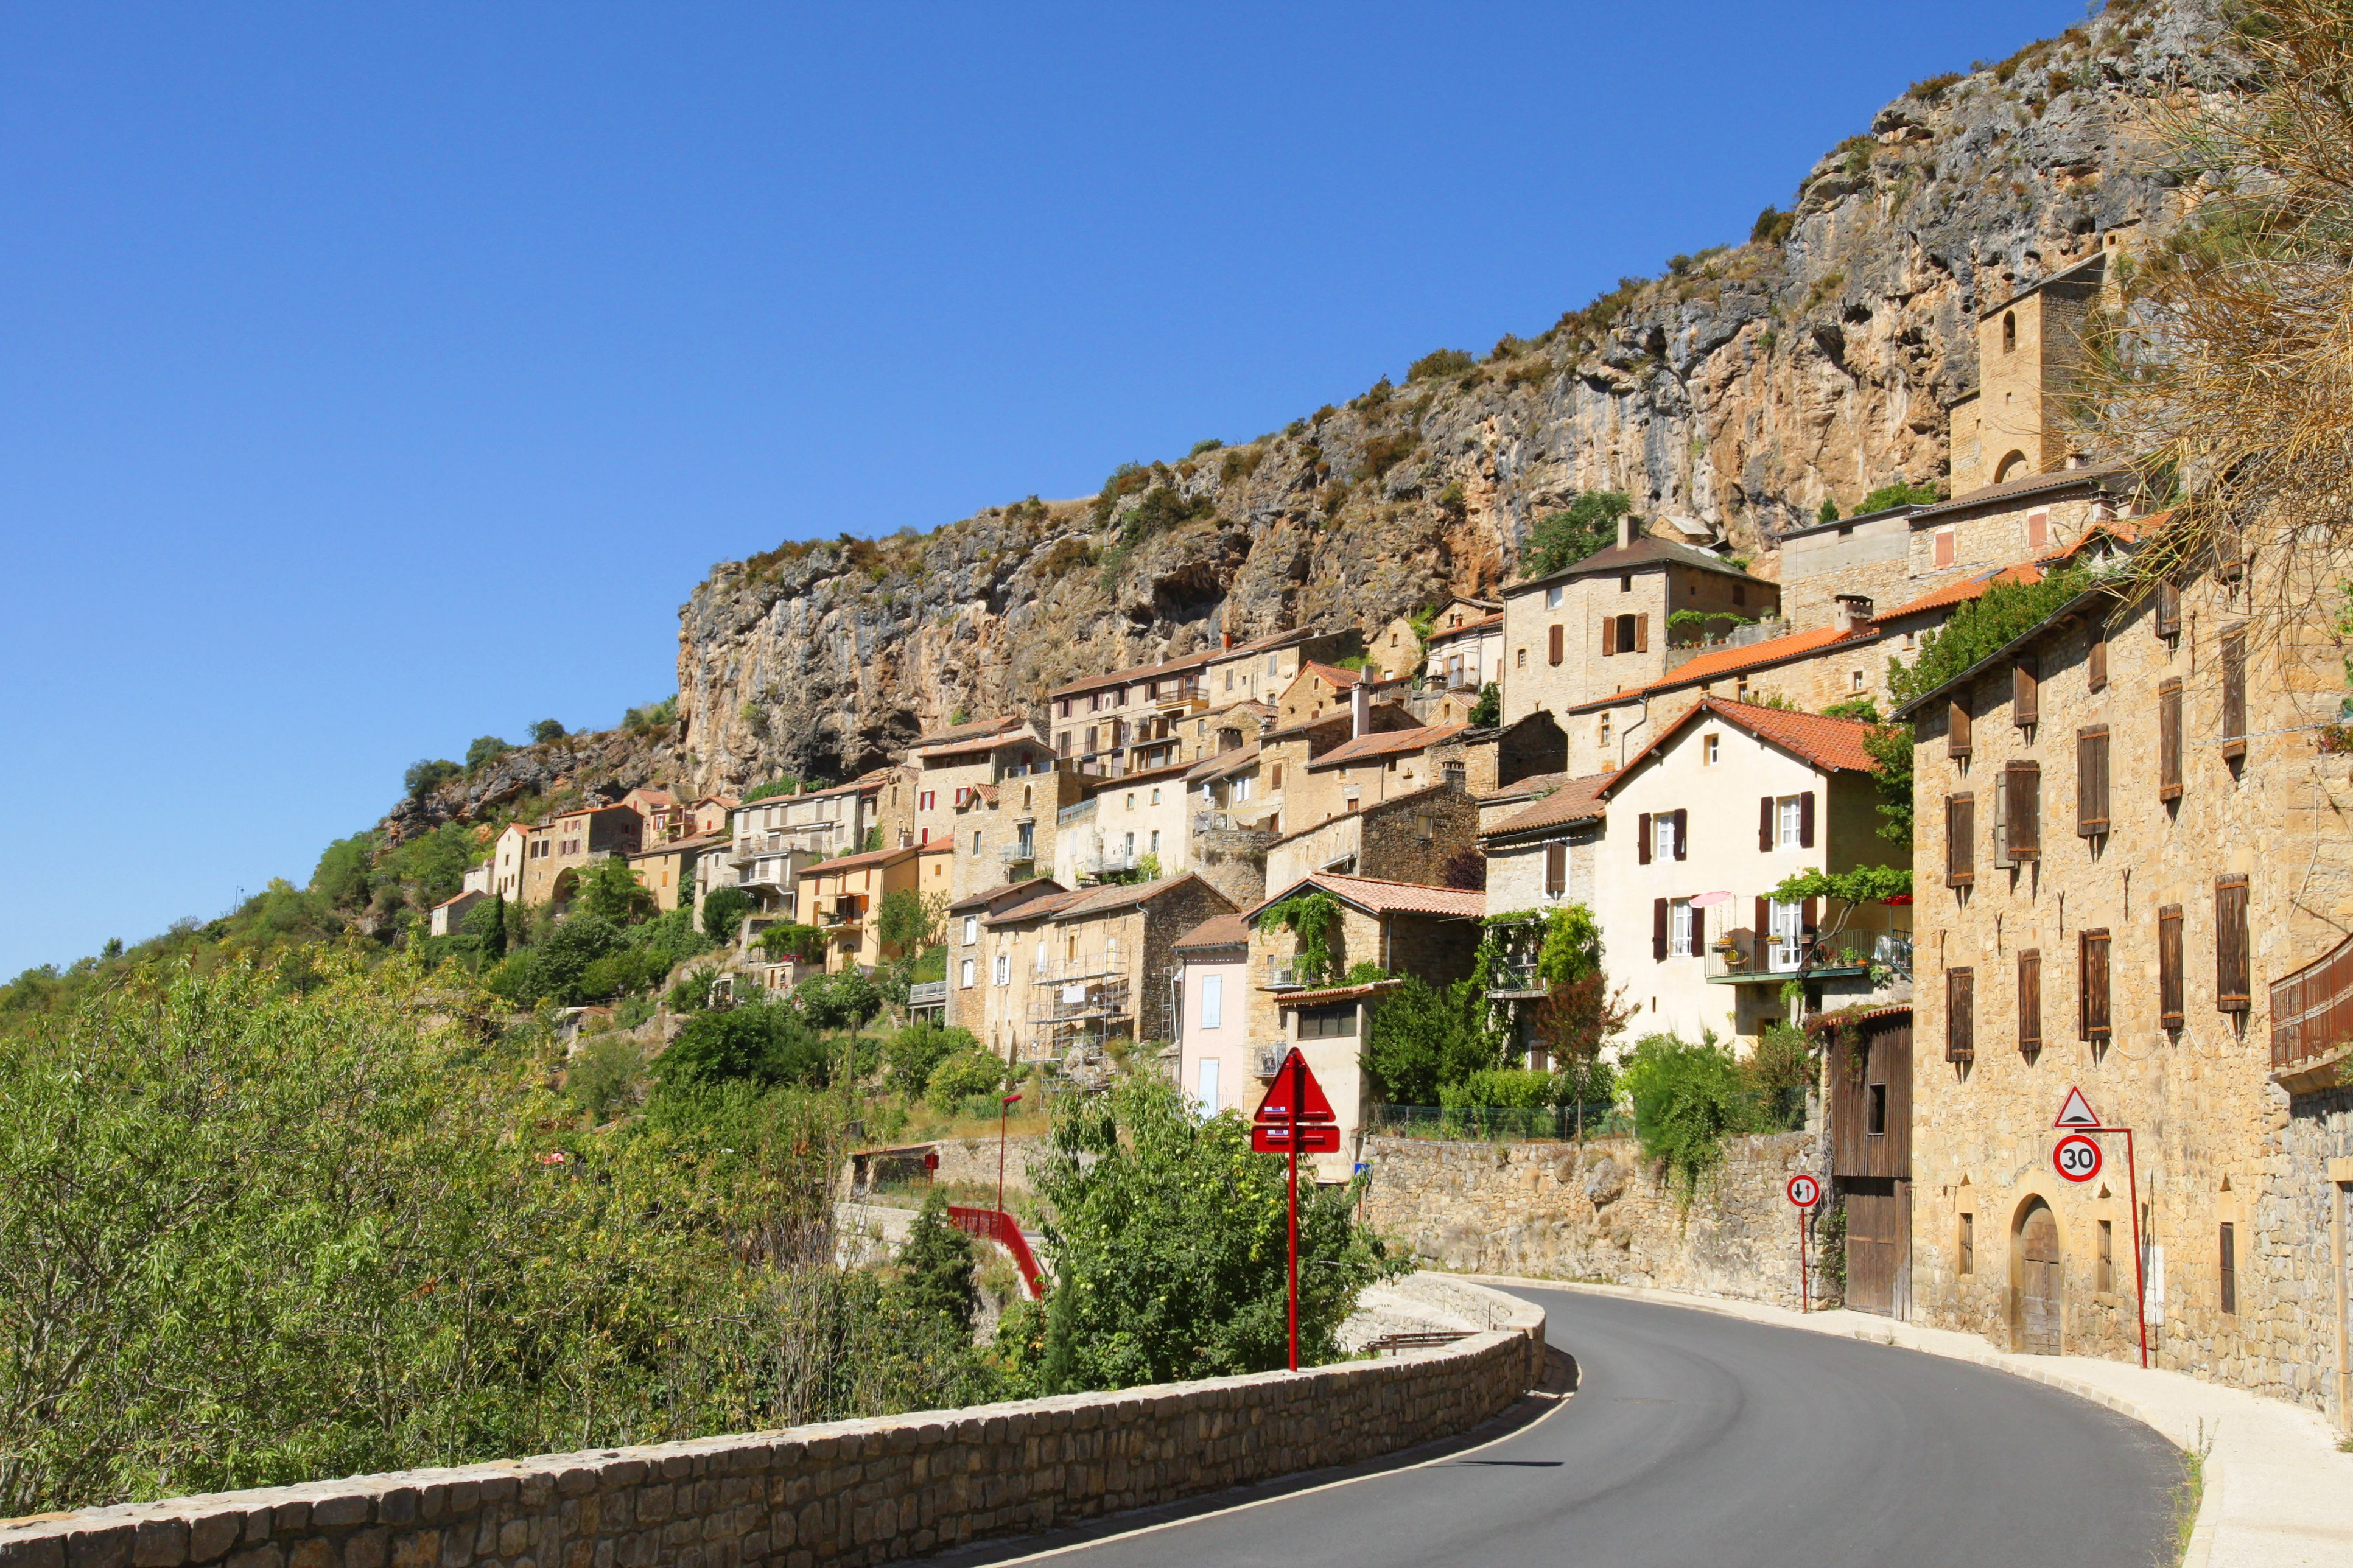 Semi Troglodytes Village in the South of France